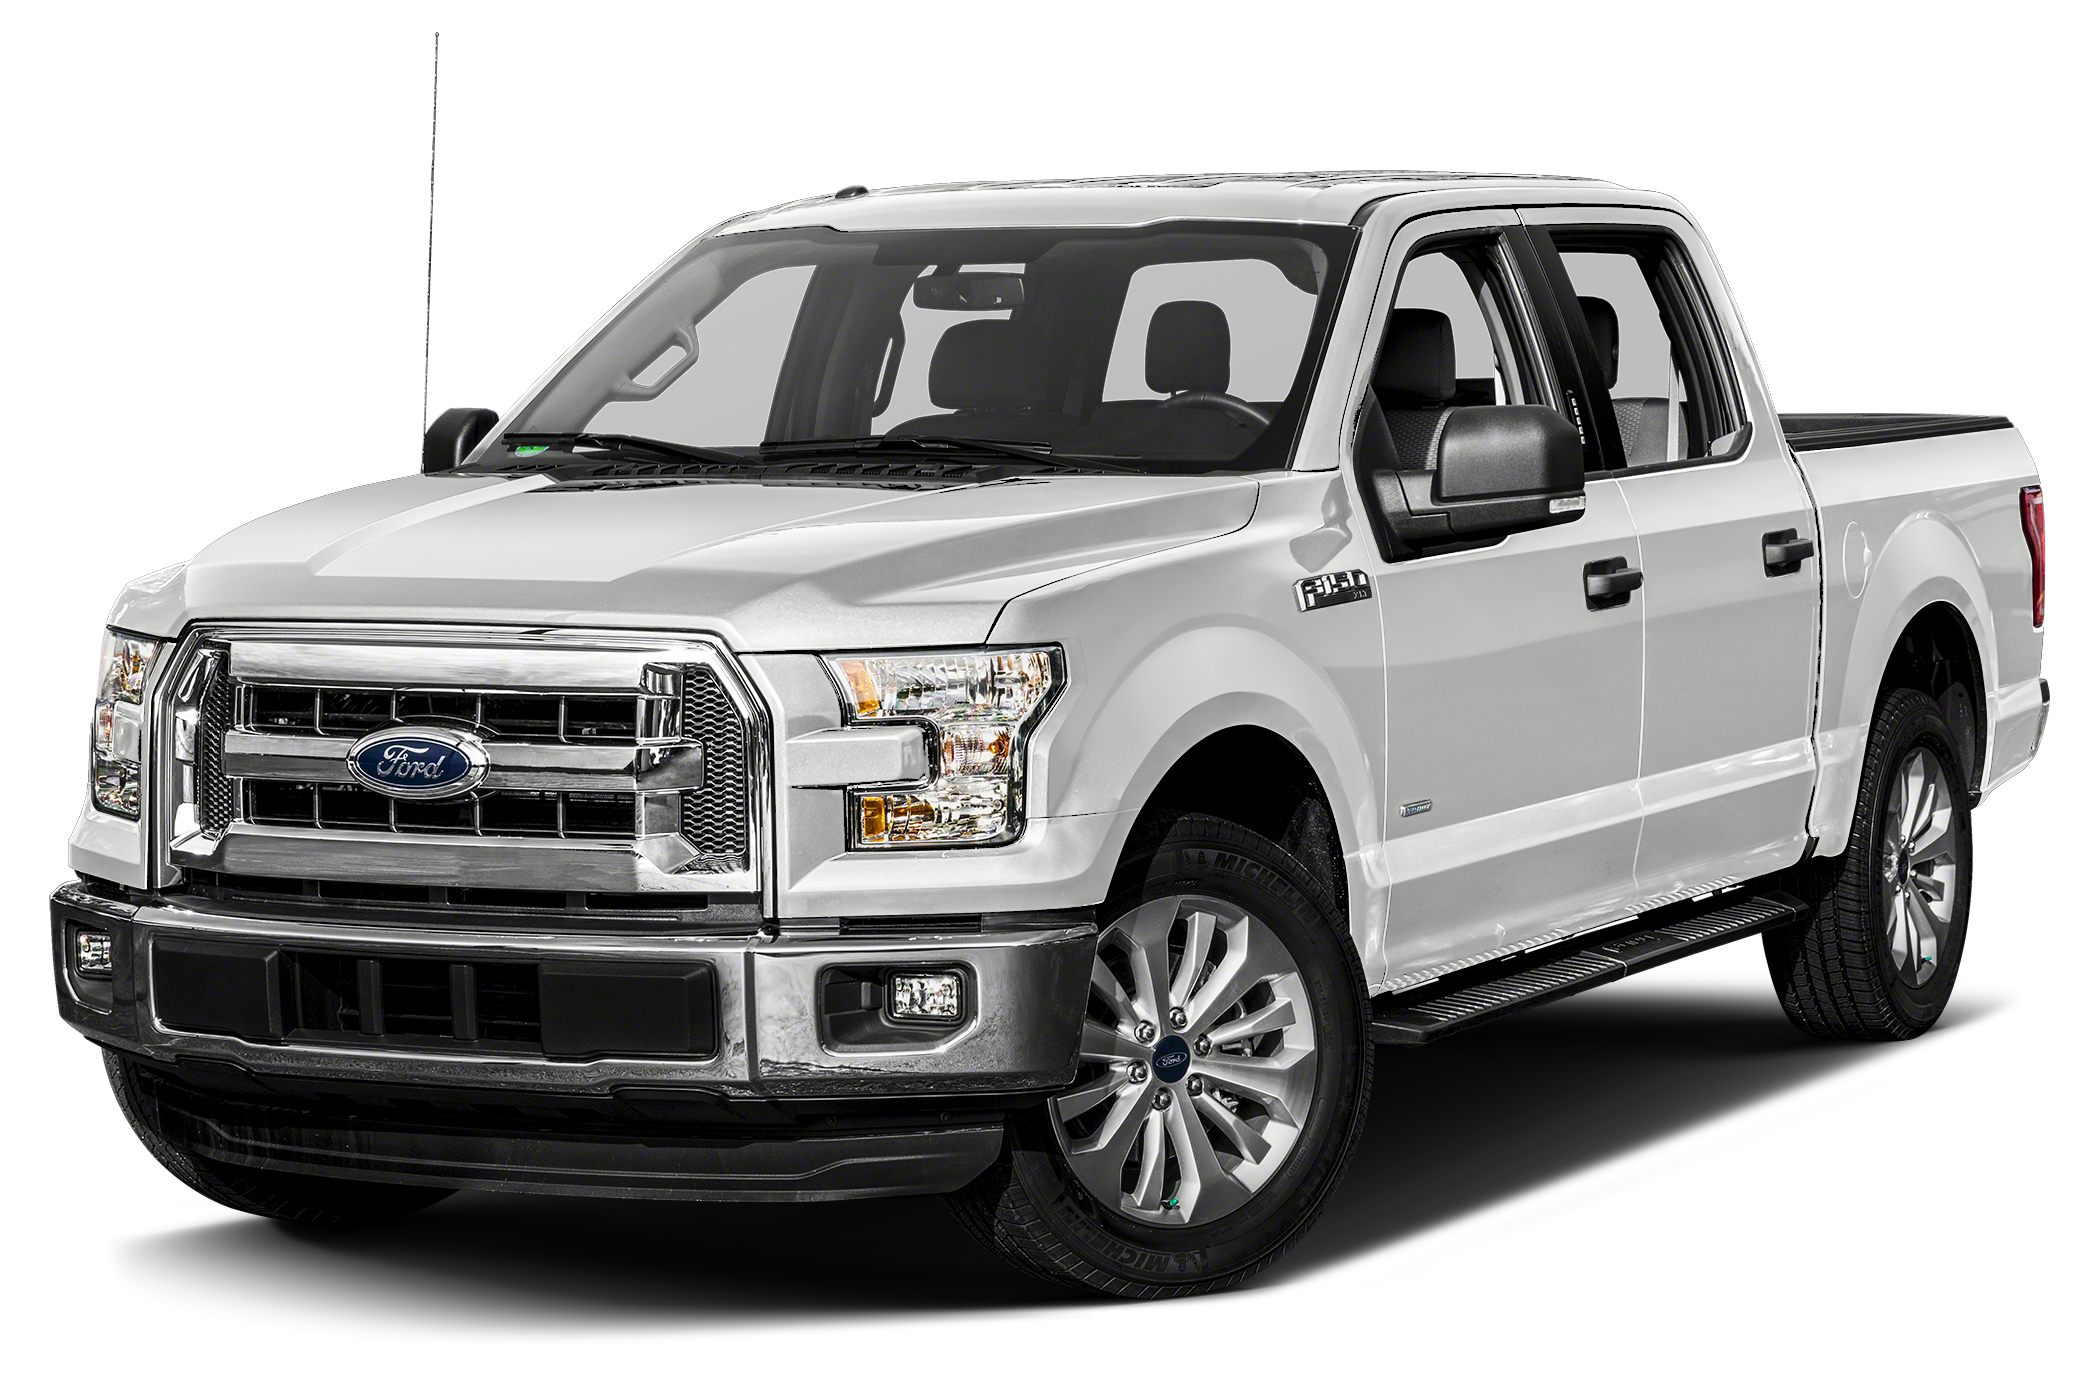 2017 Ford F-150 XLT 8153 off MSRP 2619 HighwayCity MPG Oxford White 2017 Ford F-150 4D SuperC